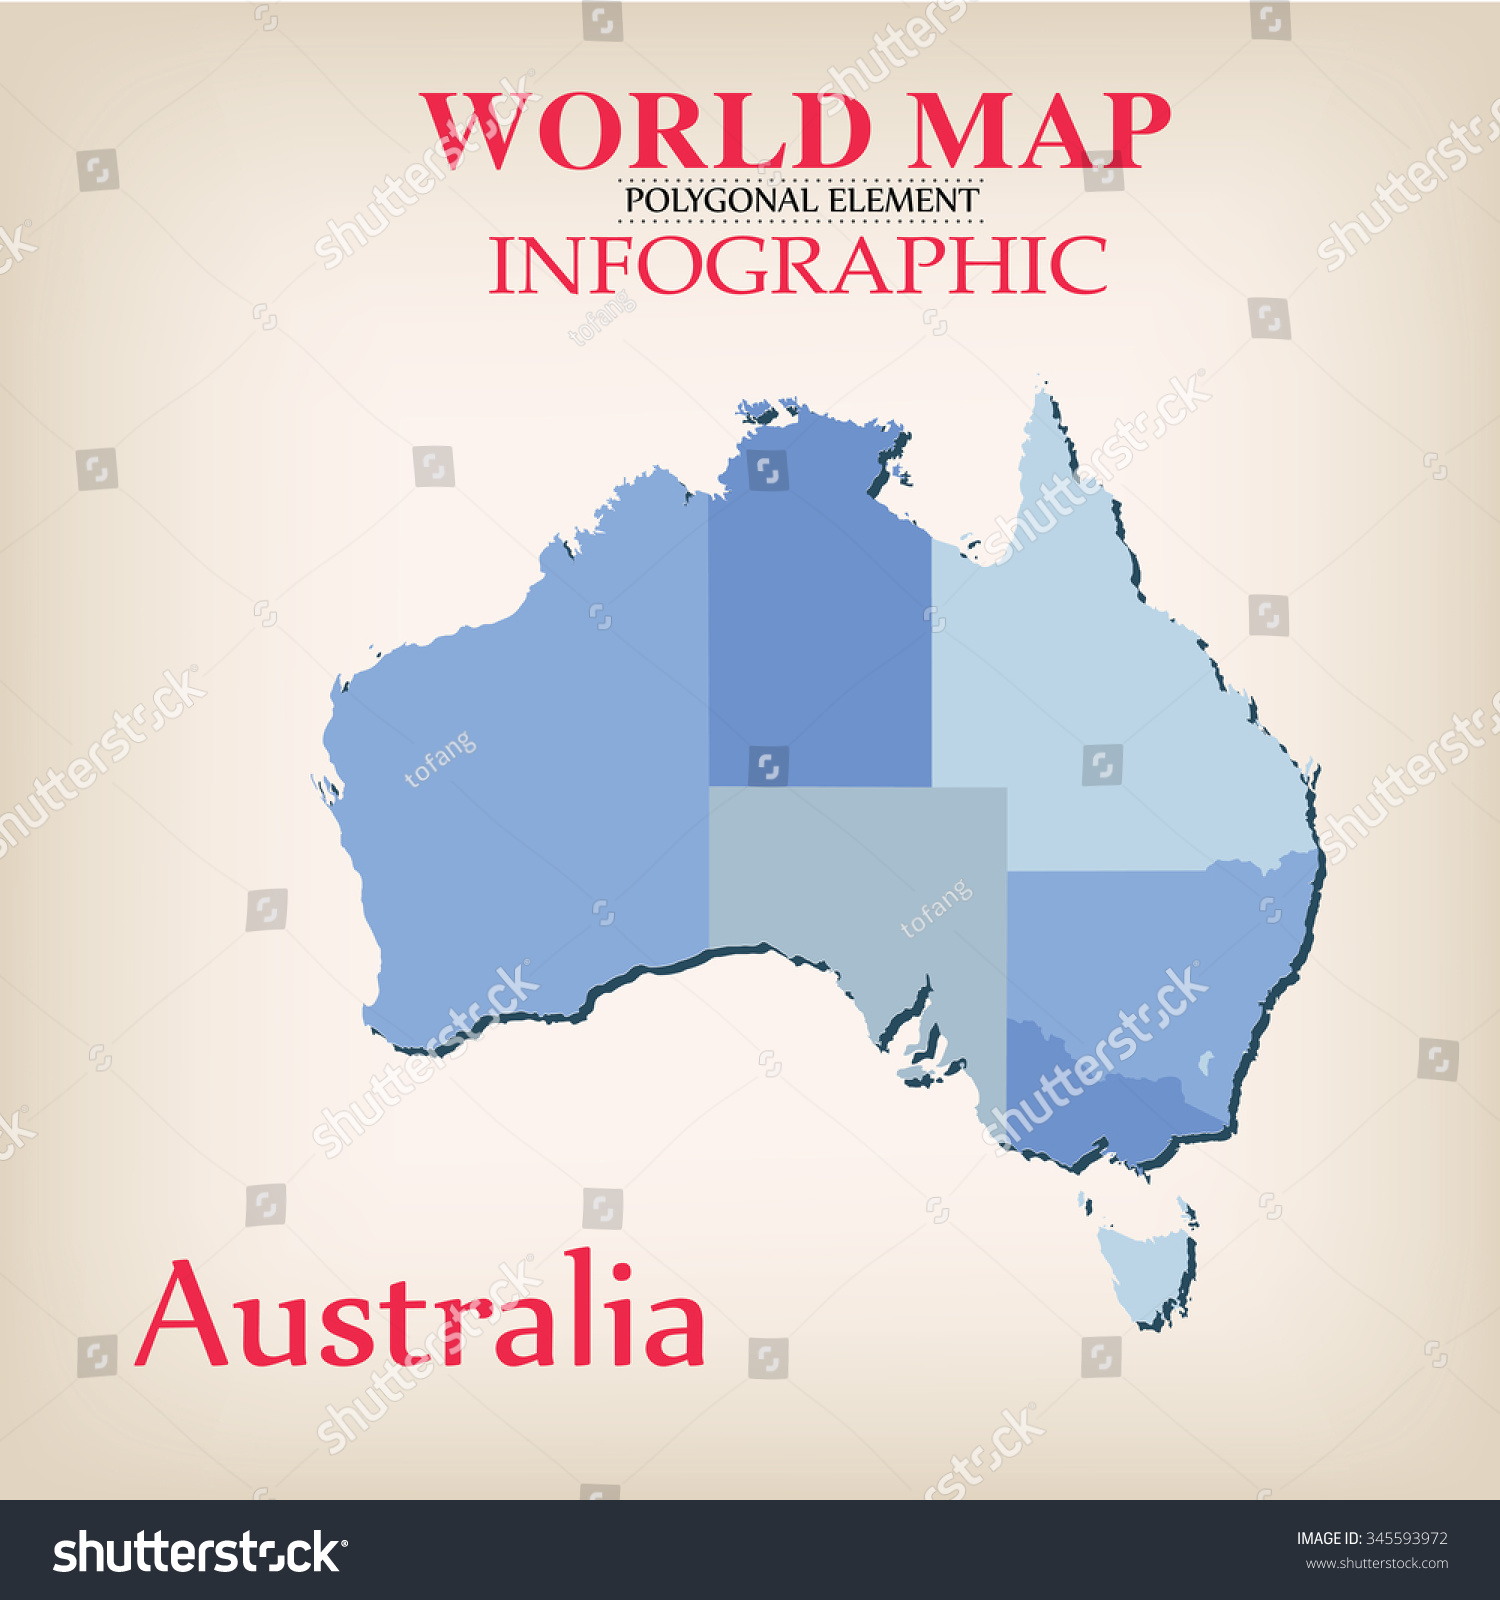 World map info graphic vector stock vector 345593972 shutterstock world map info graphic vector biocorpaavc Images